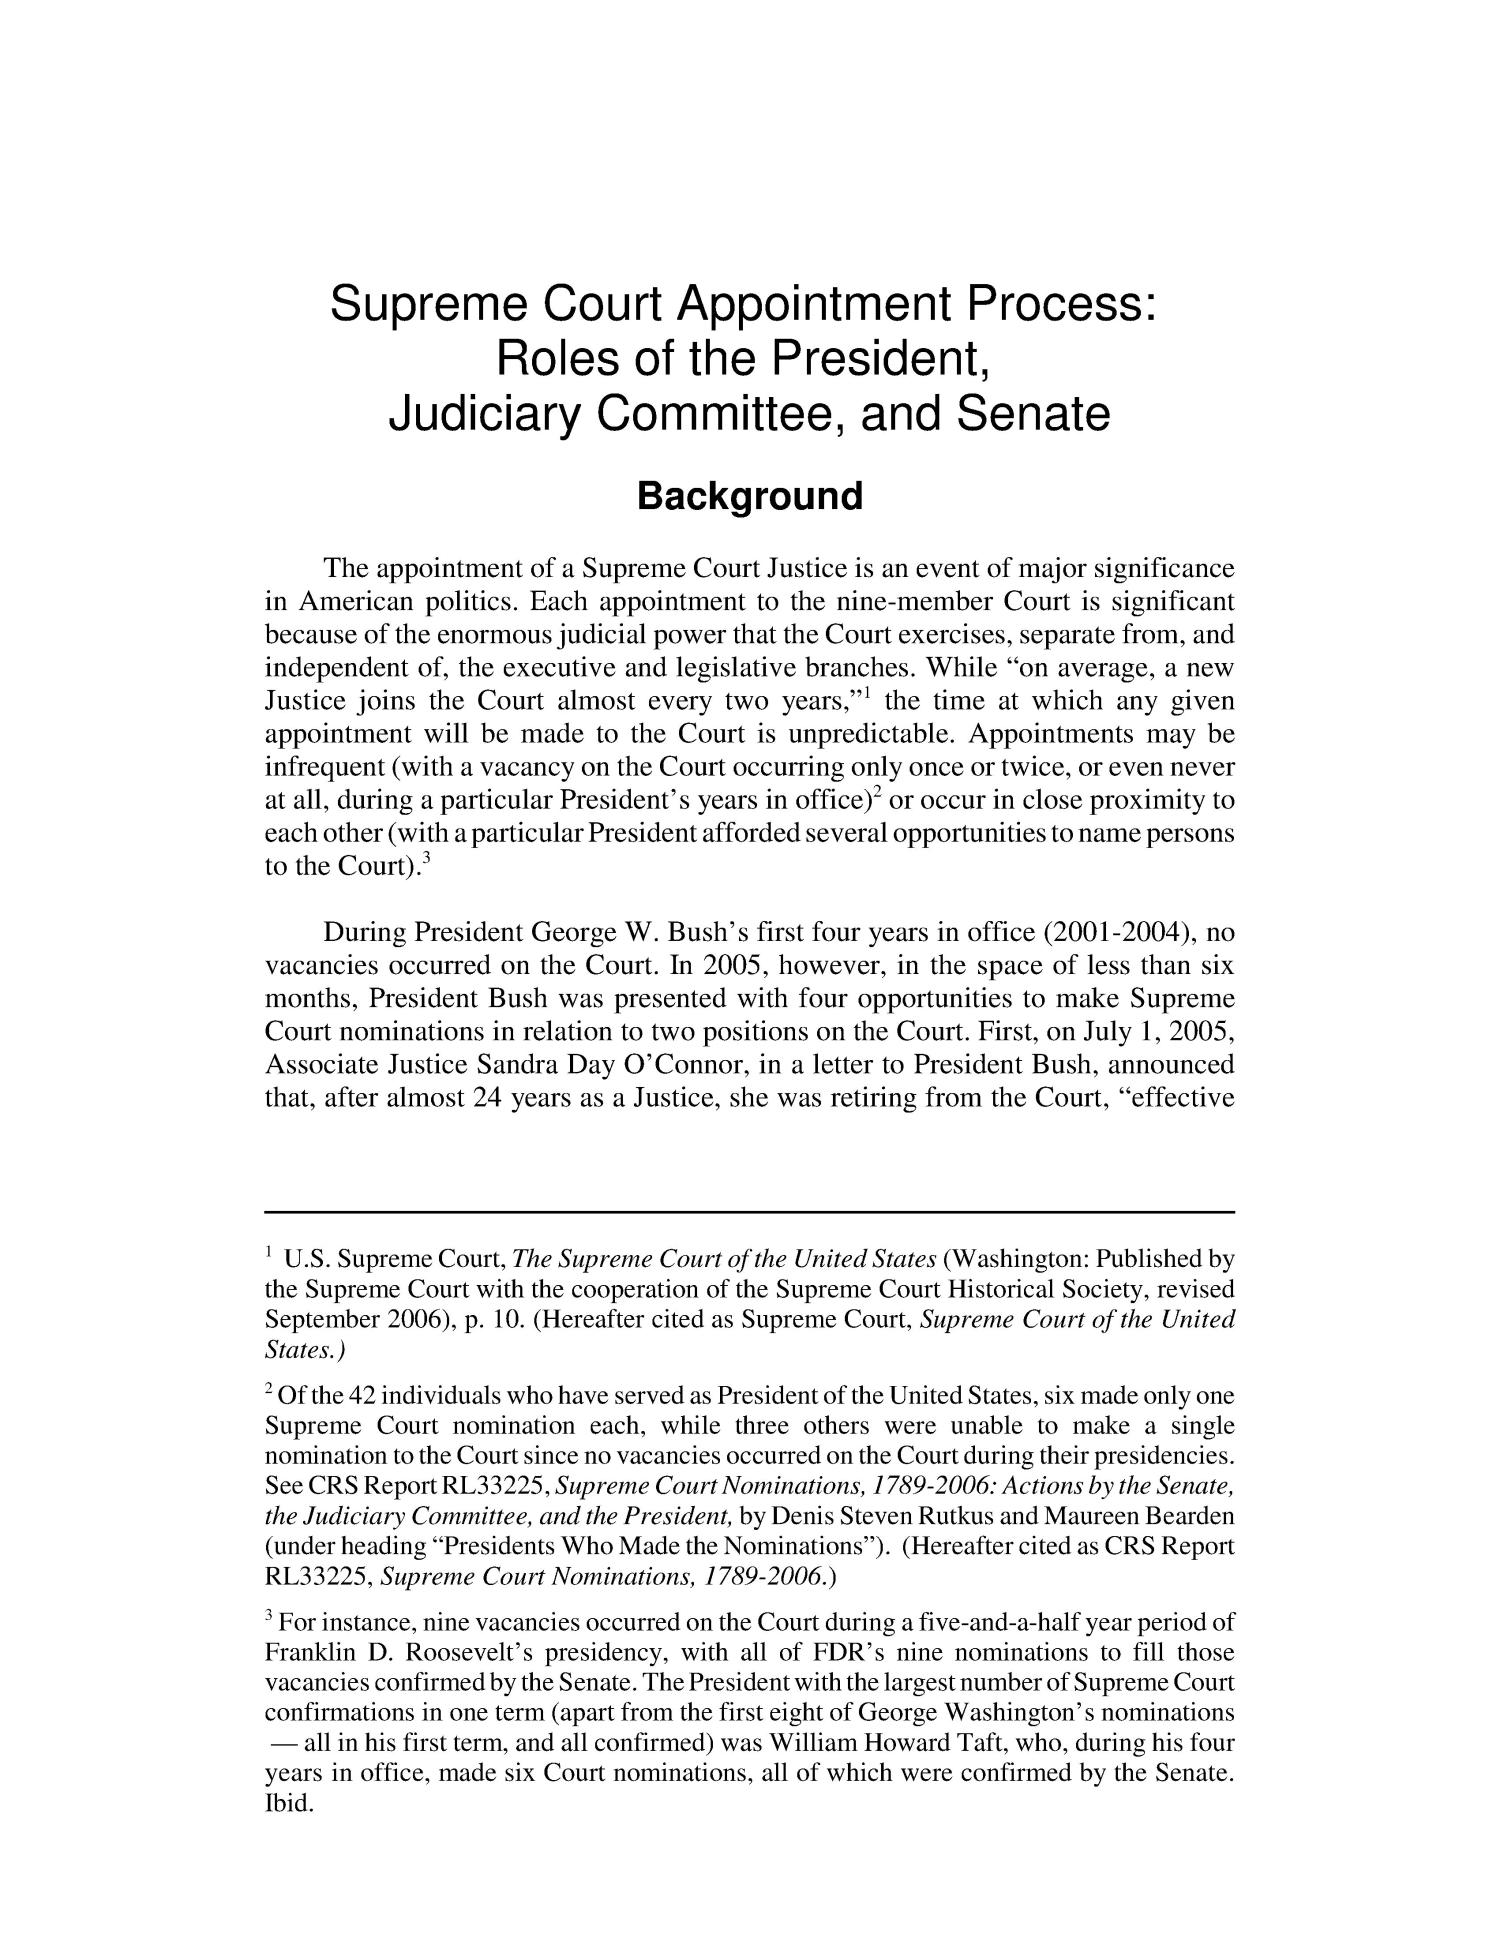 Supreme Court Appointment Process: Roles of the President, Judiciary Committee, and Senate                                                                                                      [Sequence #]: 4 of 74